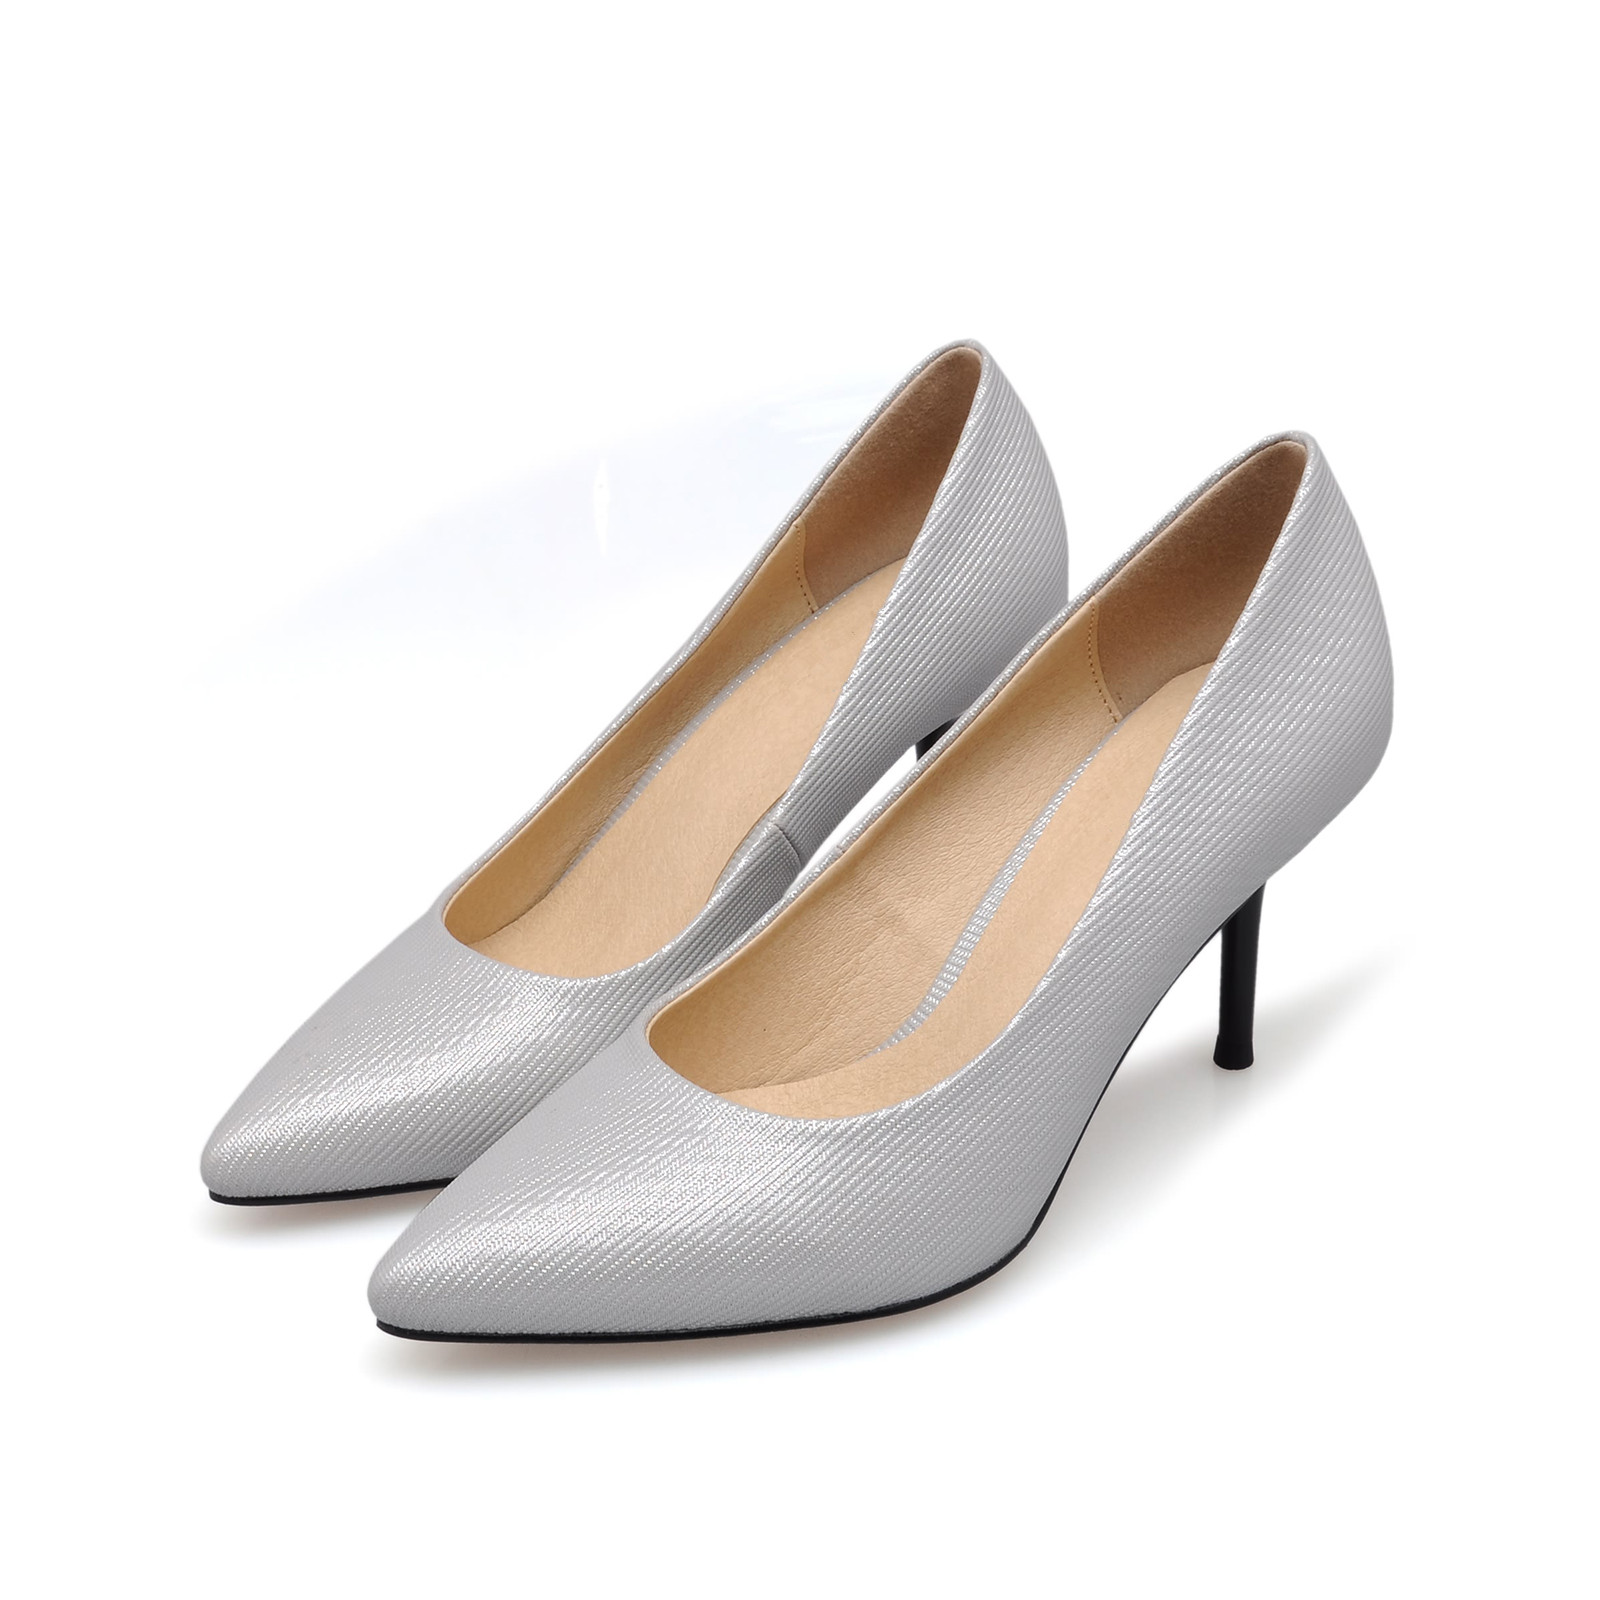 Womens New Spring Summer Thin High Heels Fashion Pointed Toe Sexy Pumps Genuine Leather Casual Office Women Shoes SMYBK-068 new 2017 spring summer women shoes pointed toe high quality brand fashion womens flats ladies plus size 41 sweet flock t179